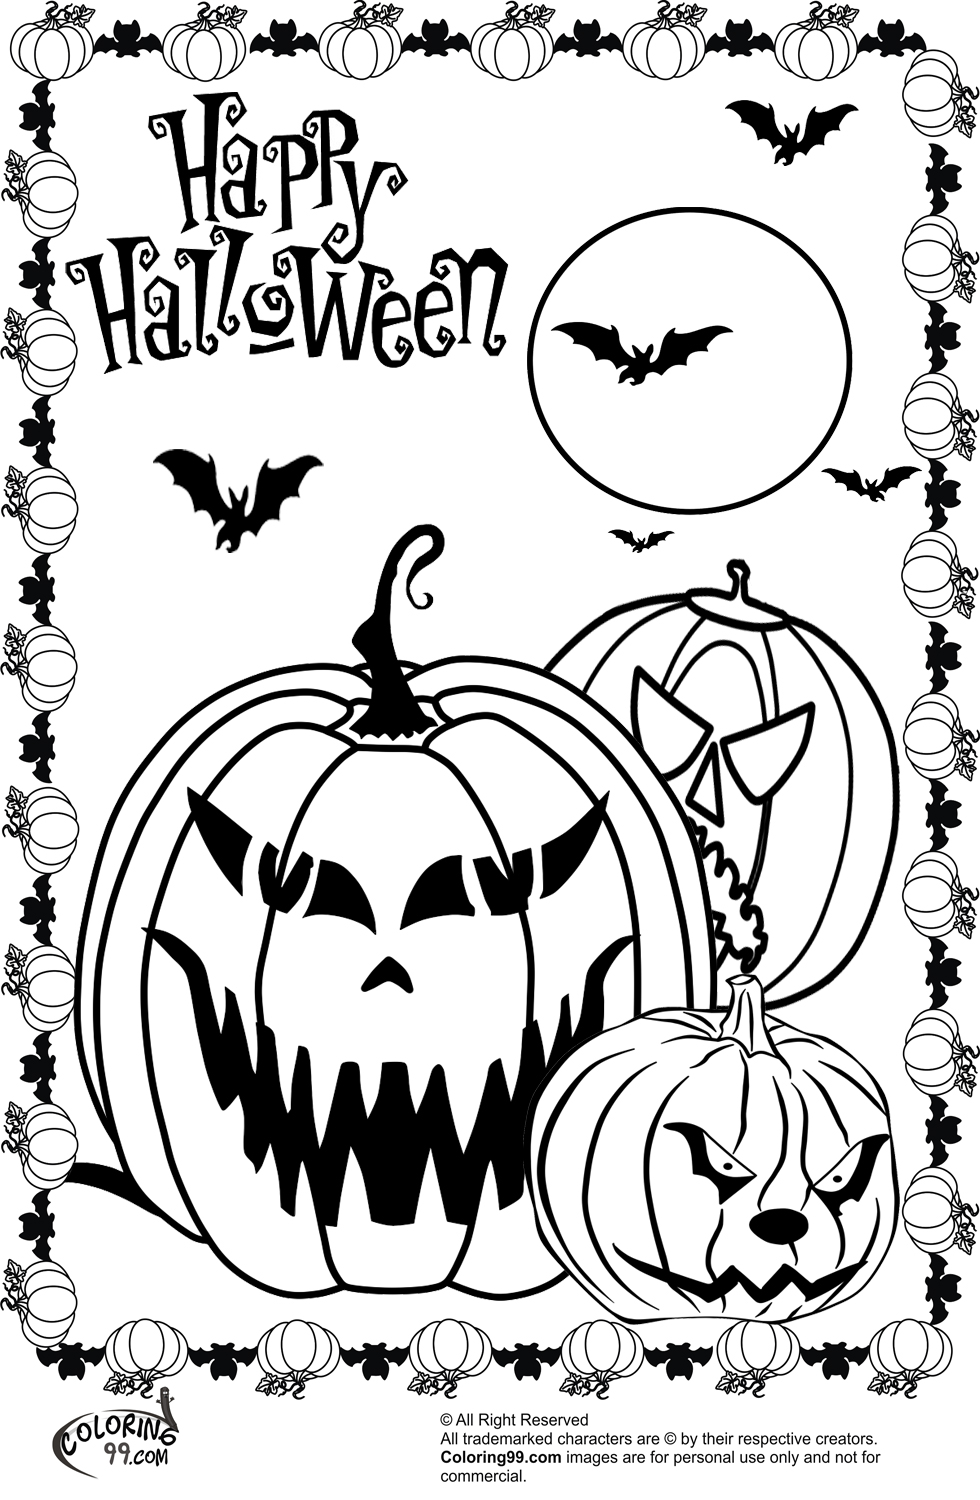 halloween pictures to color pumpkin how to draw a halloween pumpkin halloween pumpkin step pumpkin halloween to pictures color